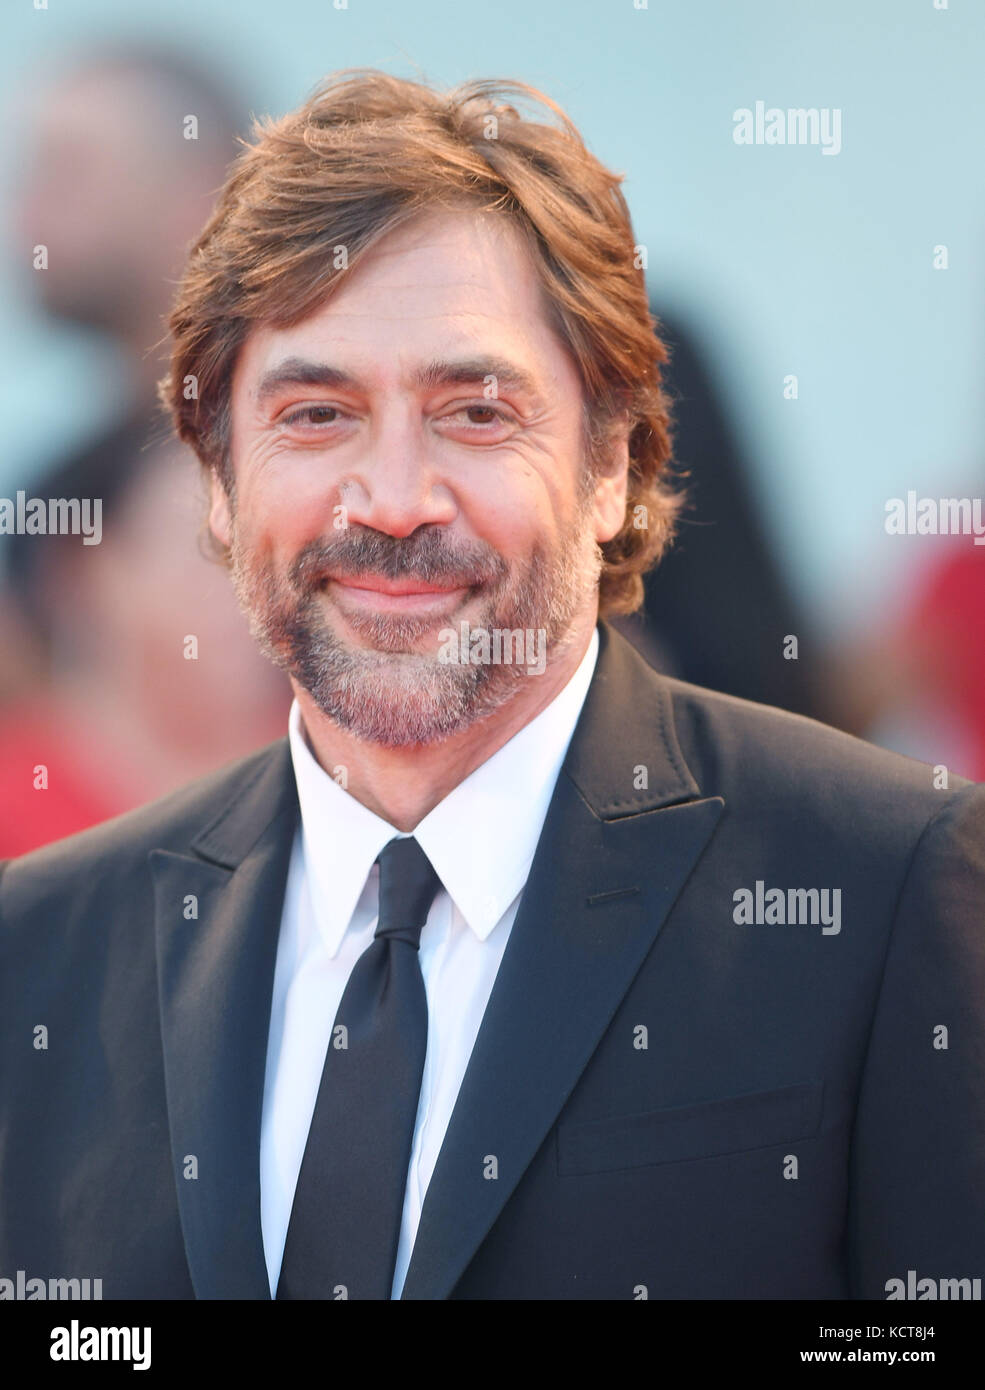 74th Venice Film Festival - Mother! - Premiere  Featuring: Javier Bardem Where: Venice, Italy When: 05 Sep 2017 - Stock Image